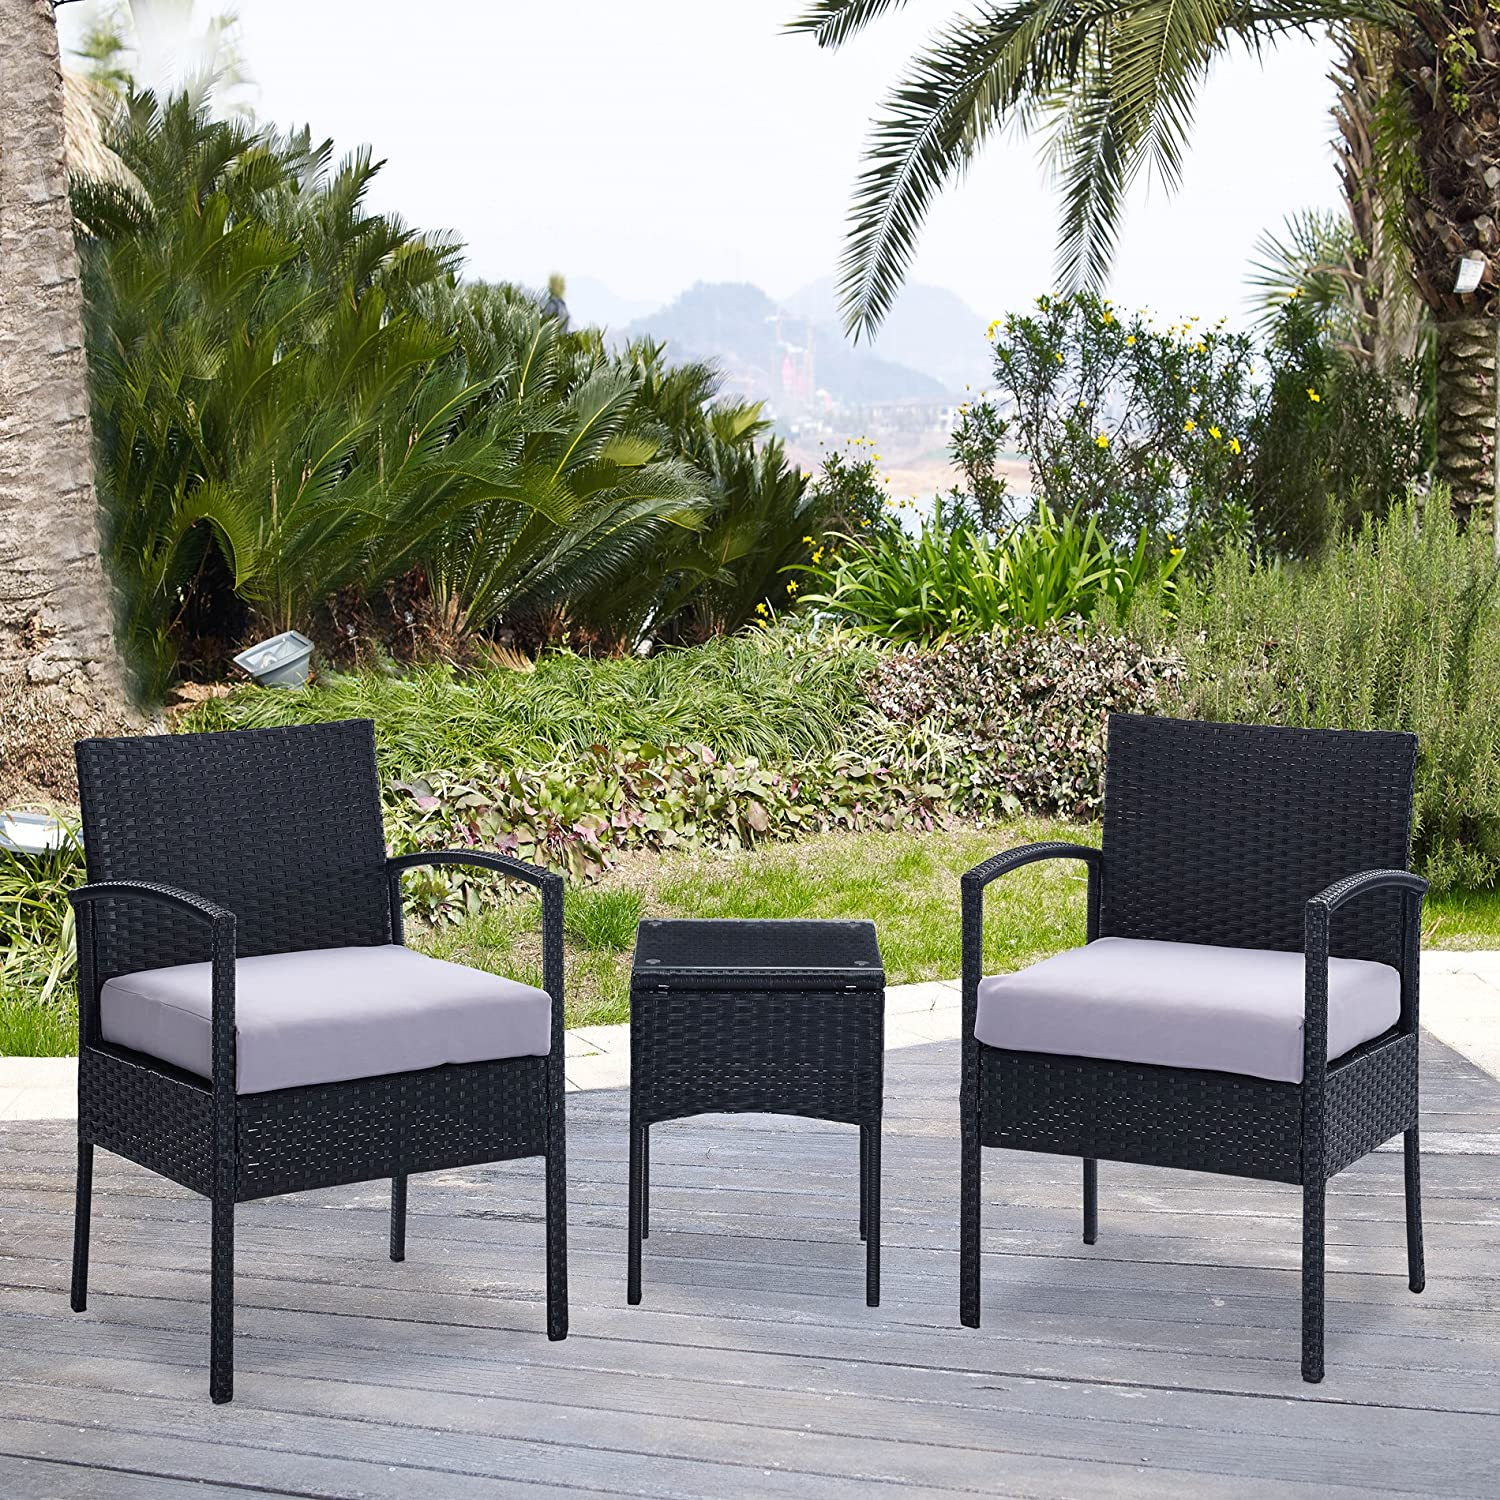 patio furniture white. EBS 3 Piece Rattan Wicker Patio Garden Lawn Furniture Outdoor / Indoor Complete Set With Coffee Table + Chairs For 2 - Black PE: Amazon.co.uk: \u0026 White